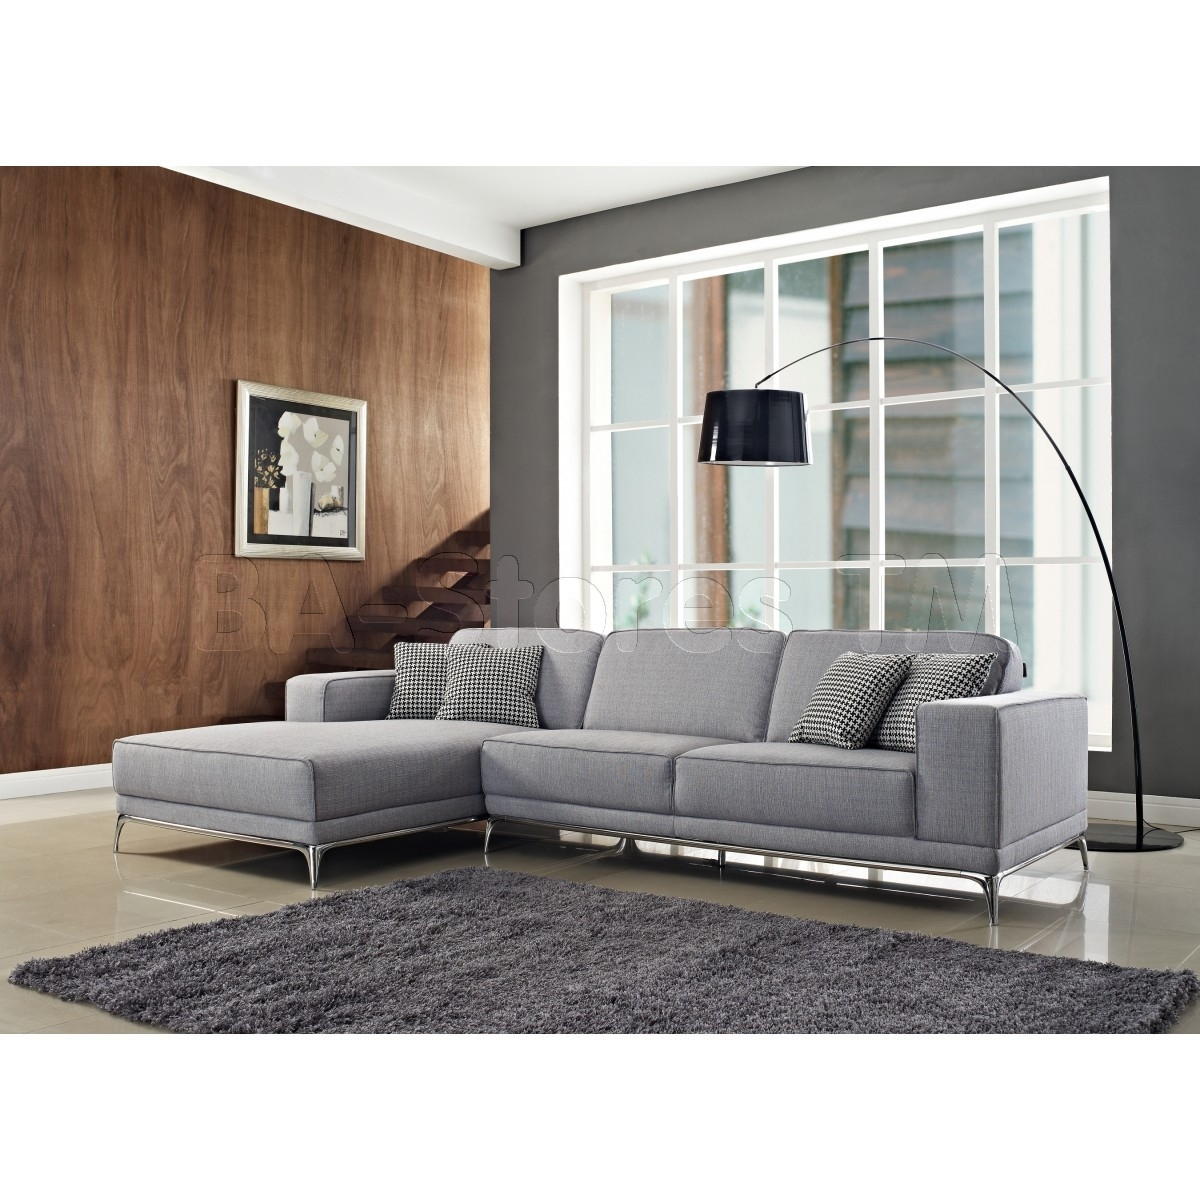 Agata Sectional Sofa | Light Grey – $2, (Image 1 of 10)